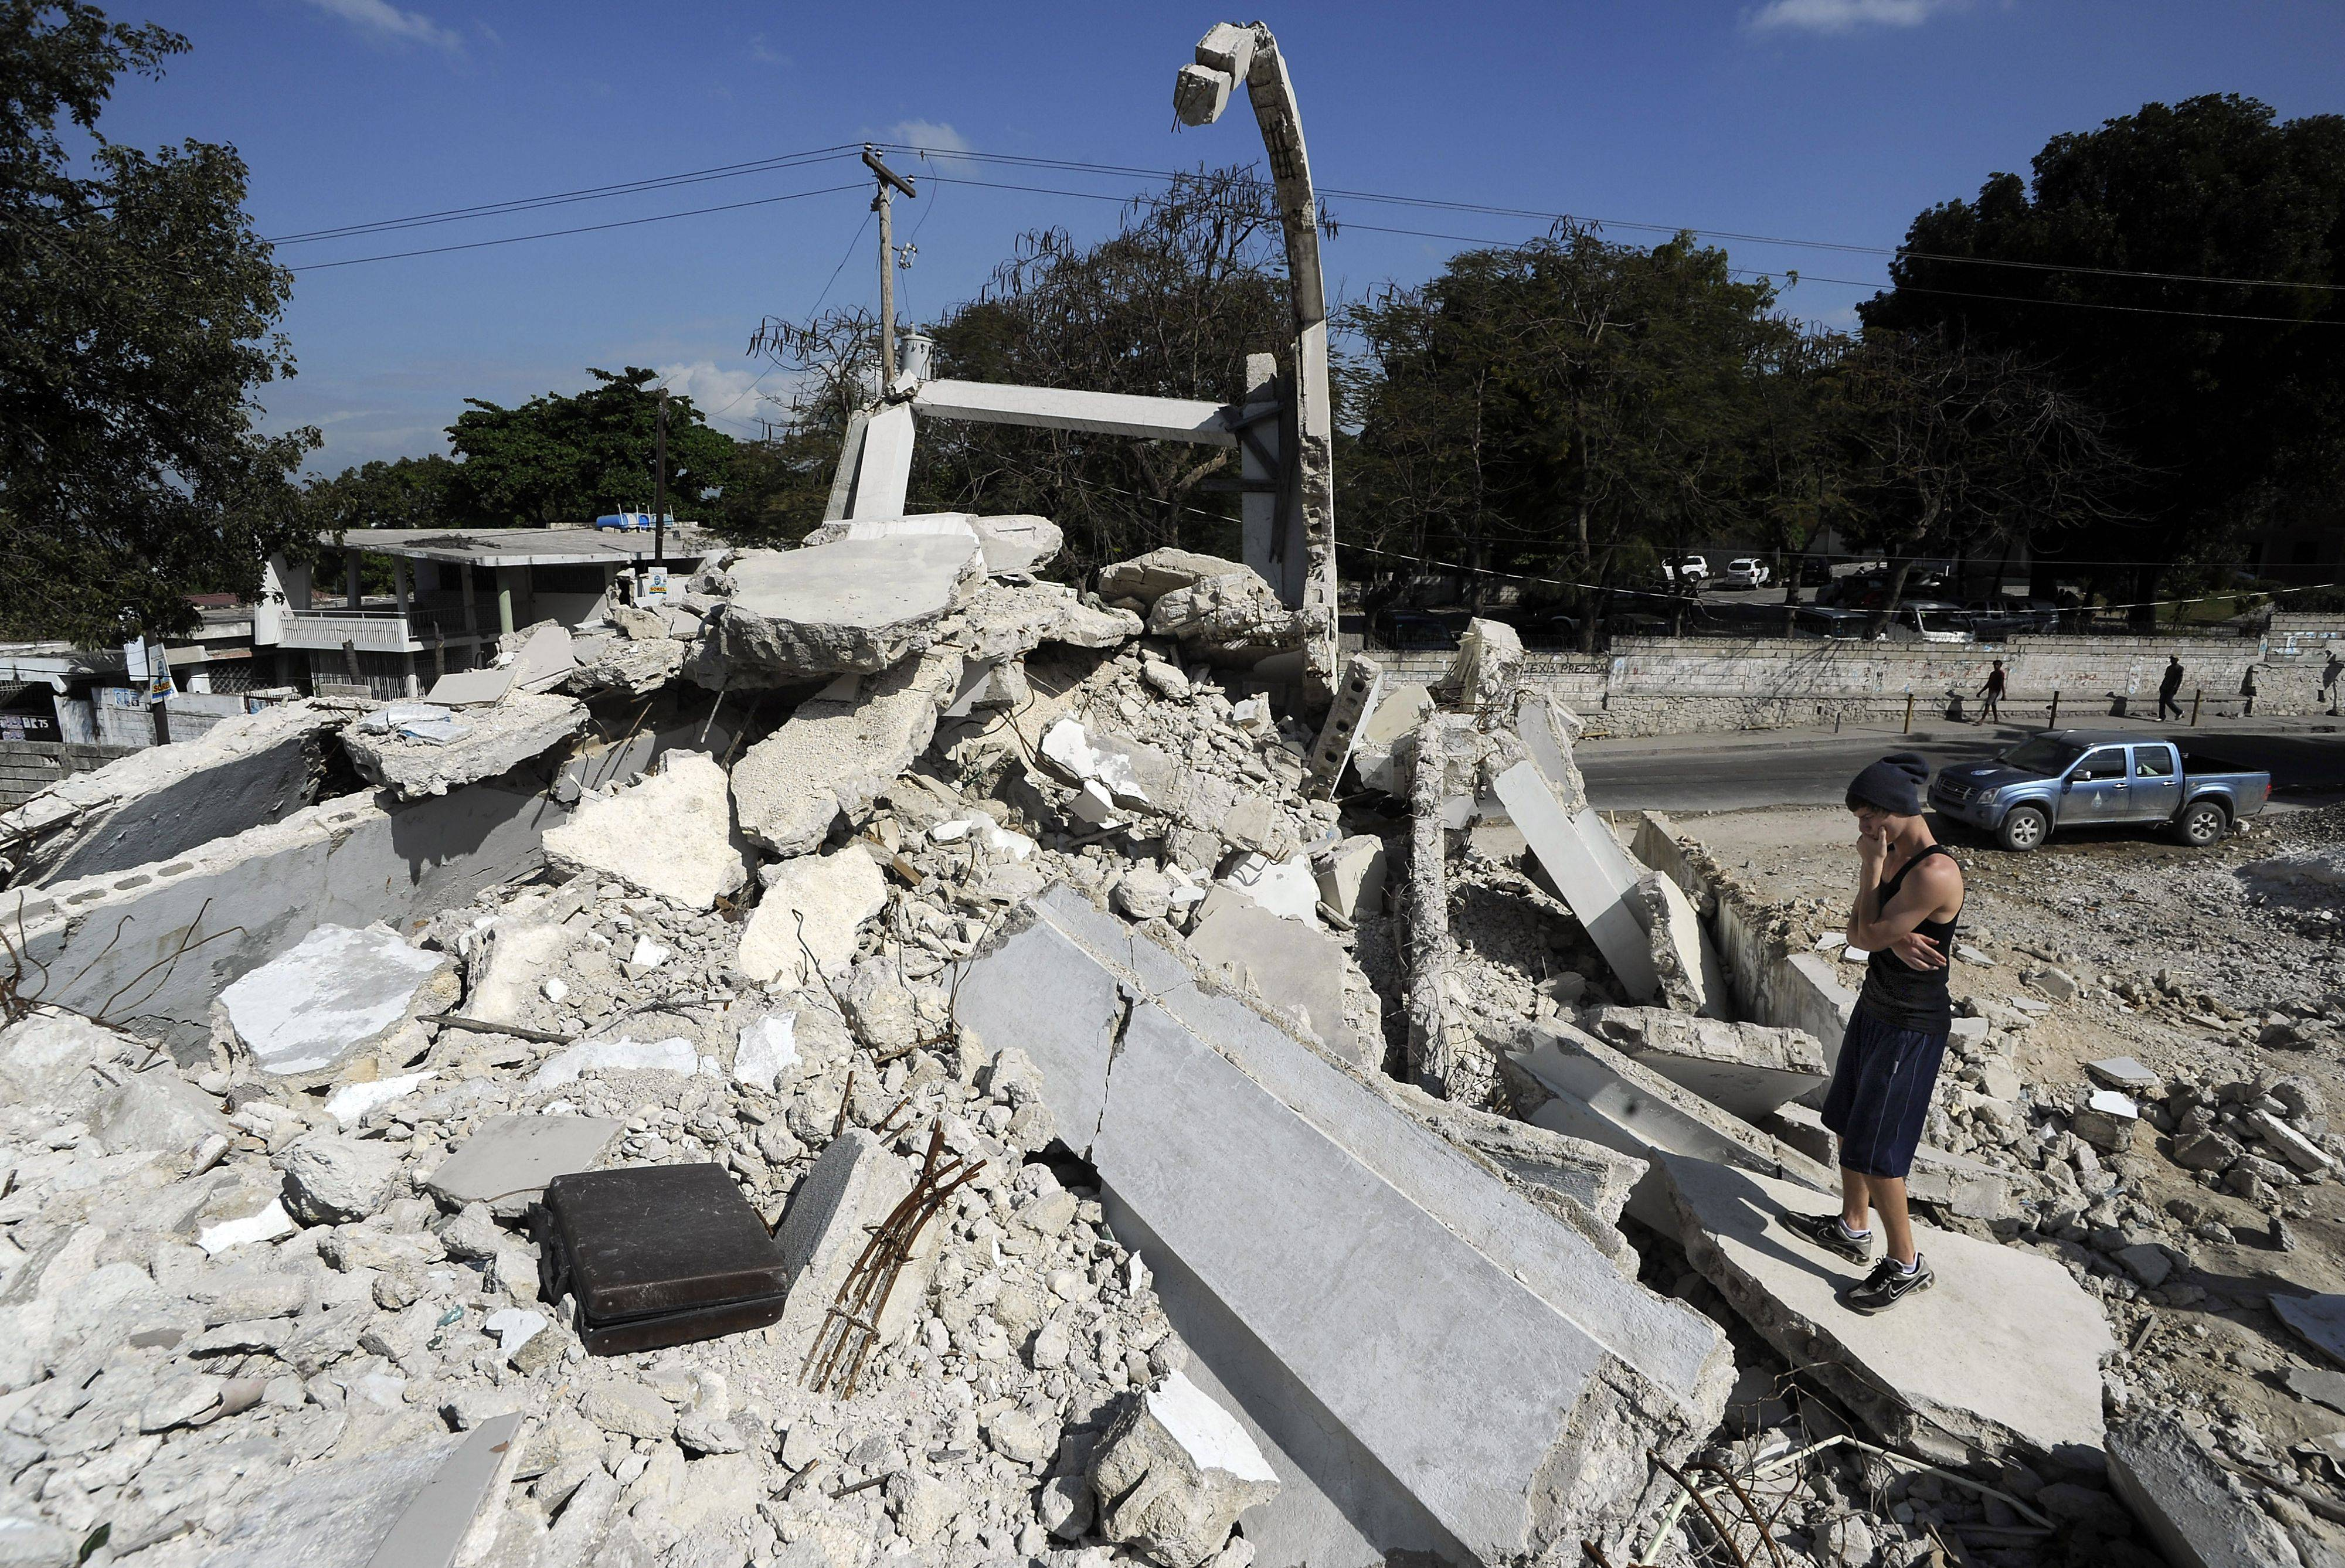 Josiah Ballantine, 18, of Elk Grove Village ponders the fate of five students still entombed under rubble at the university school in Port-au-Prince.